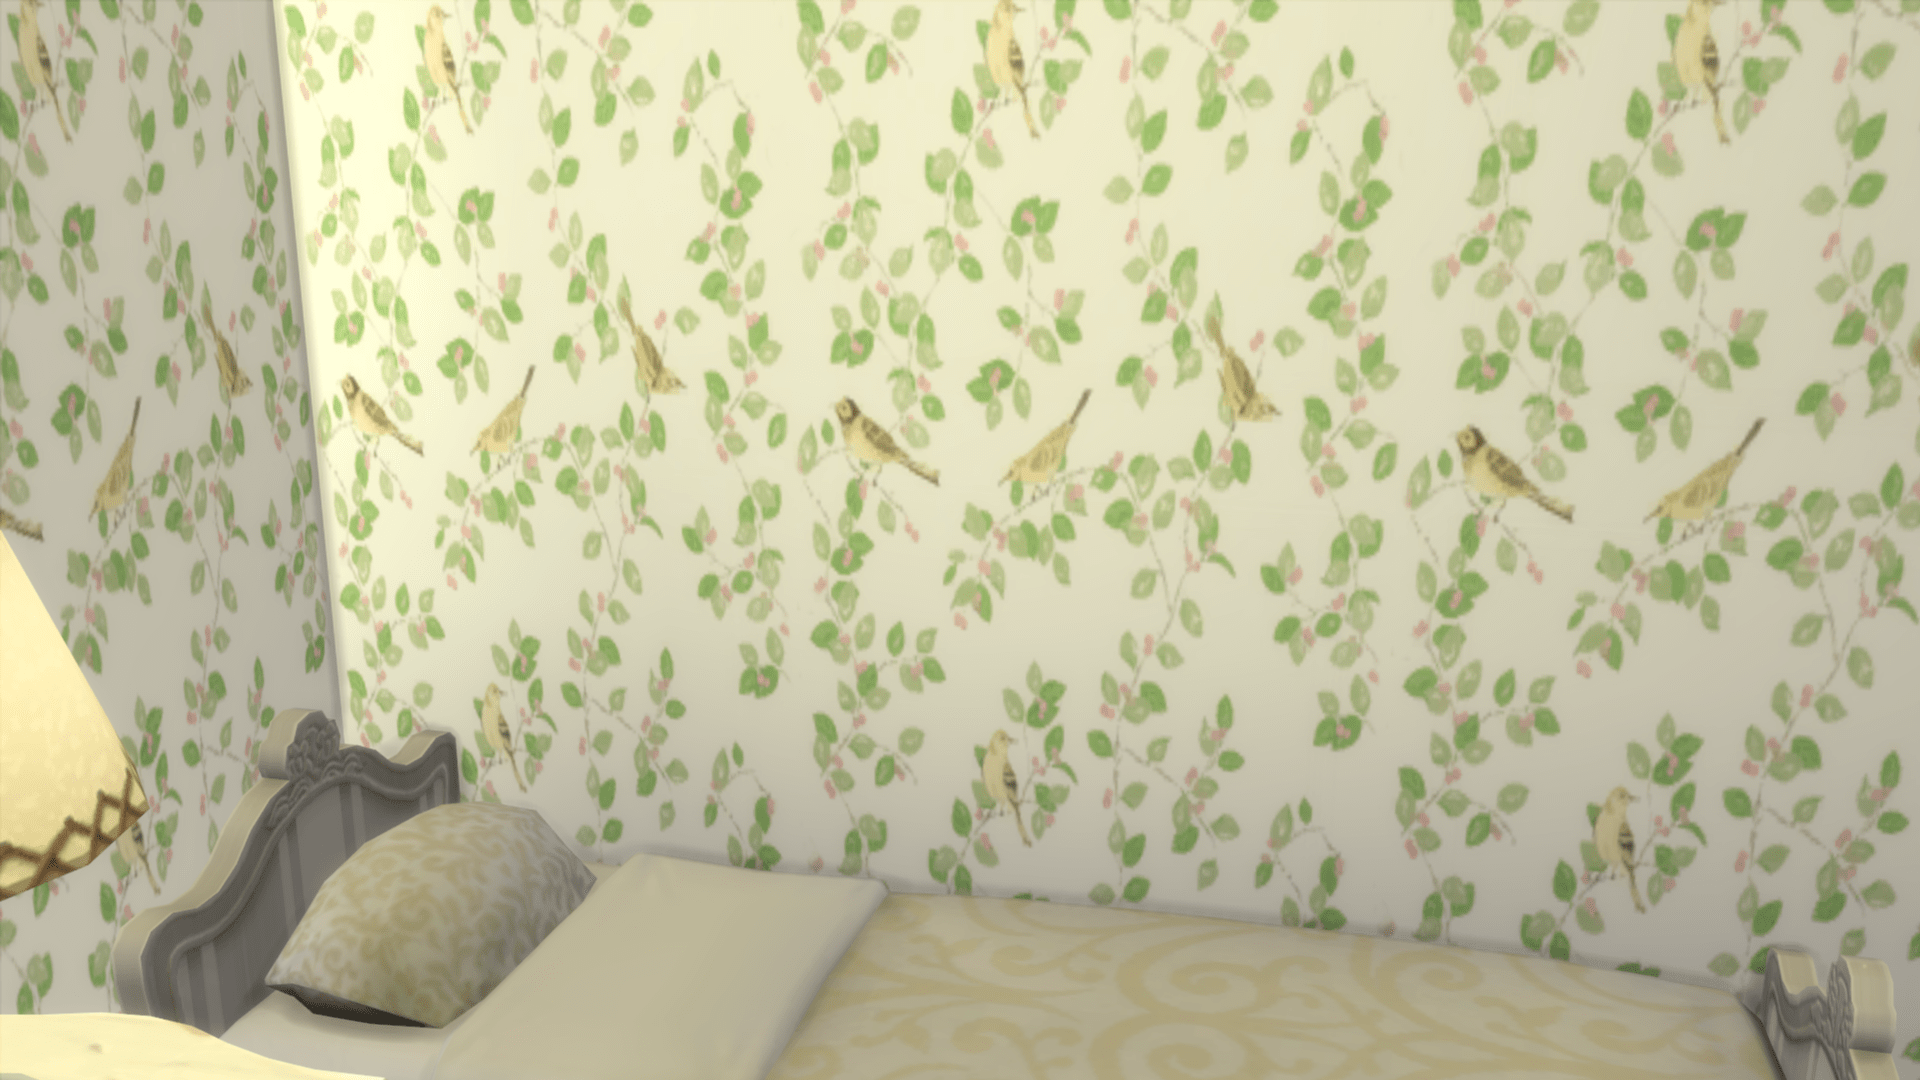 Hd Weed Wallpapers For Android Download Laura Ashley Green Wallpaper Gallery